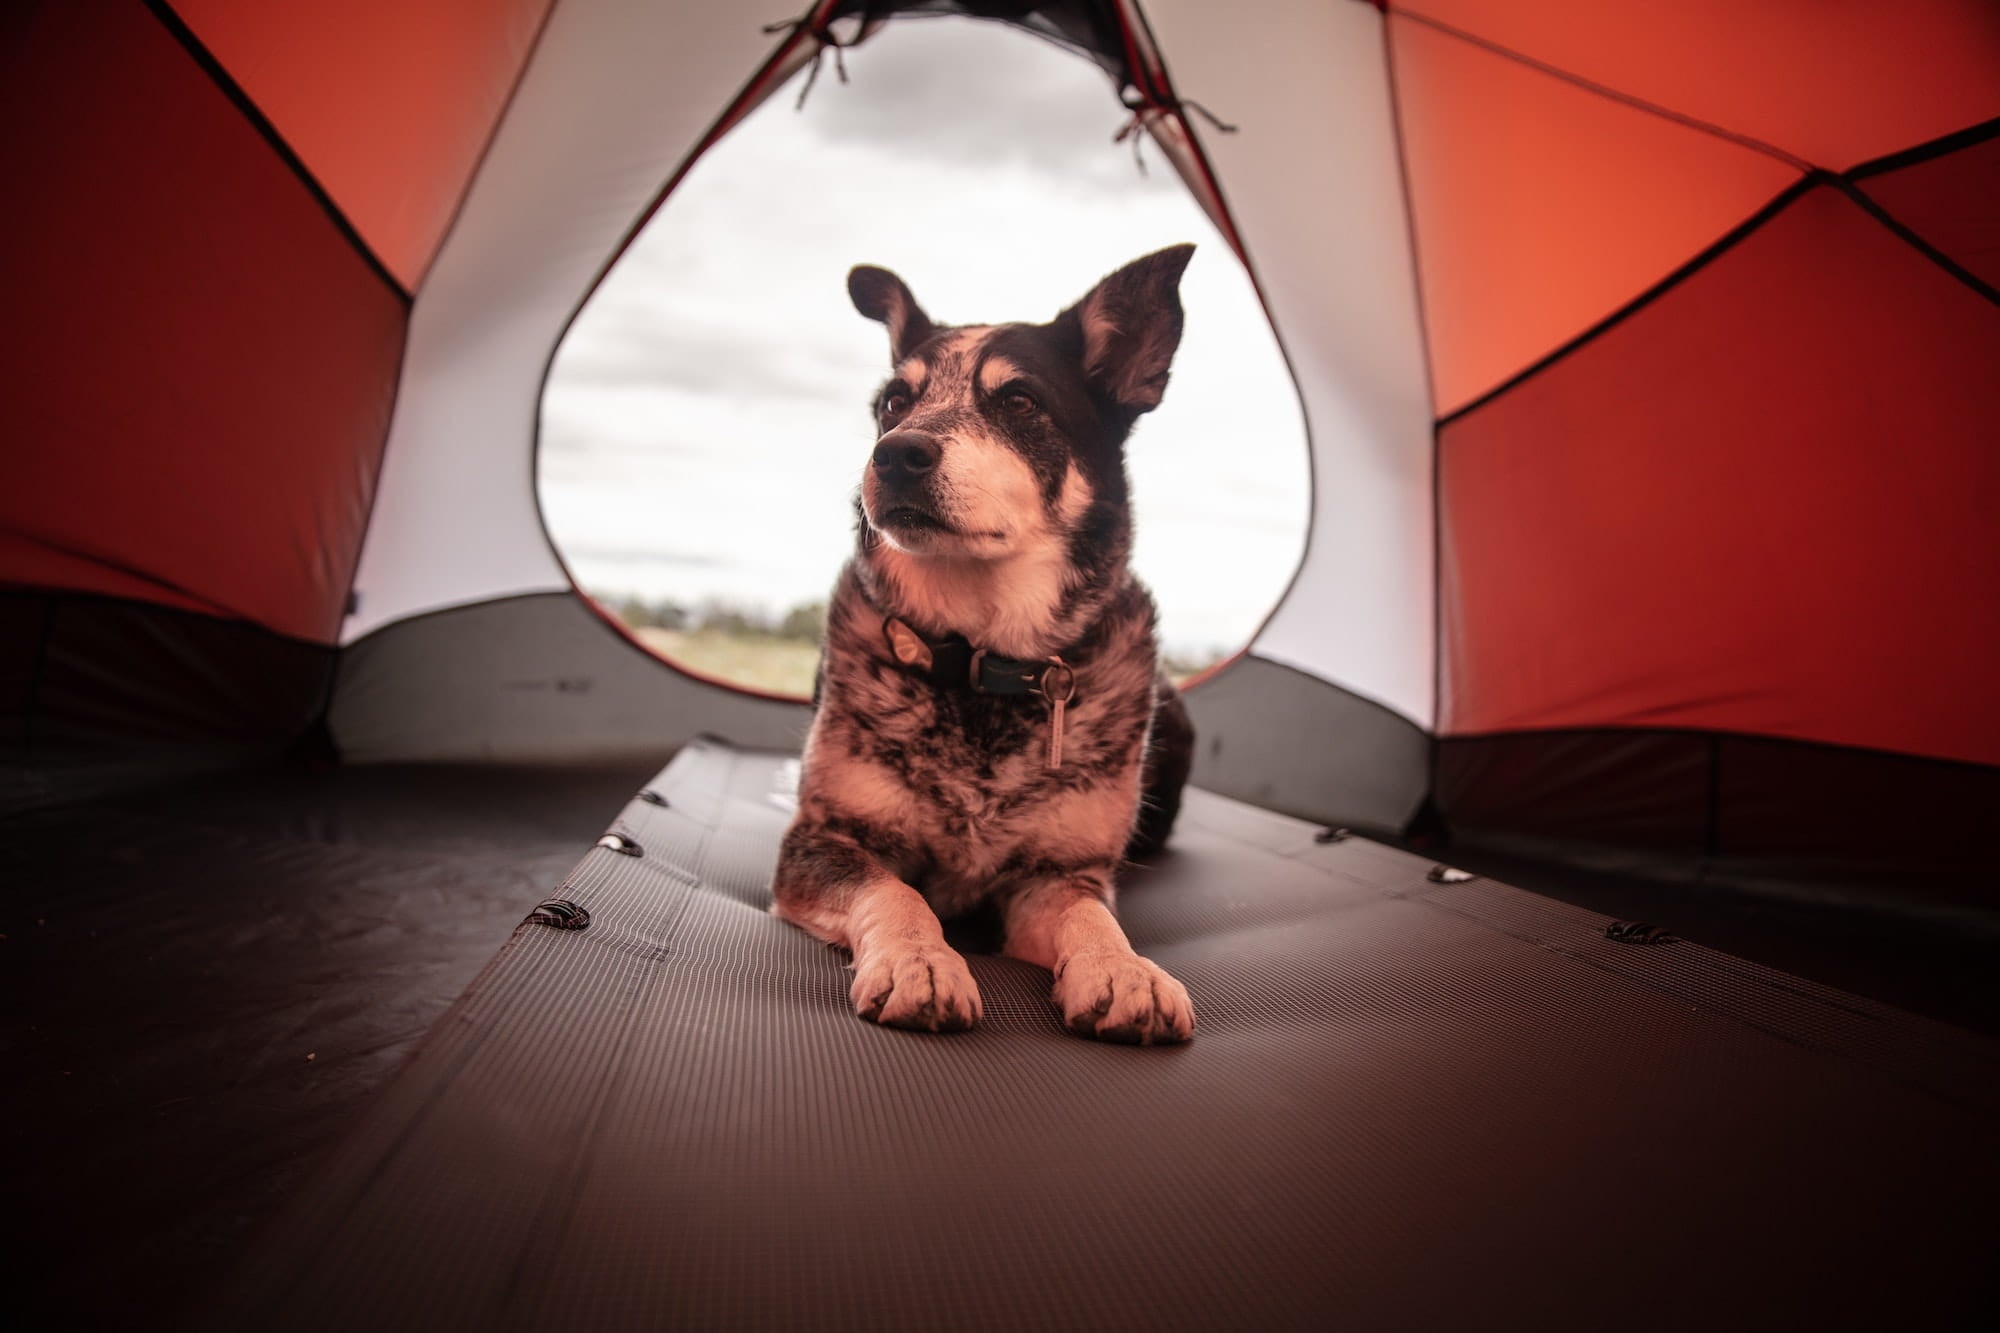 A dog sitting in a tent